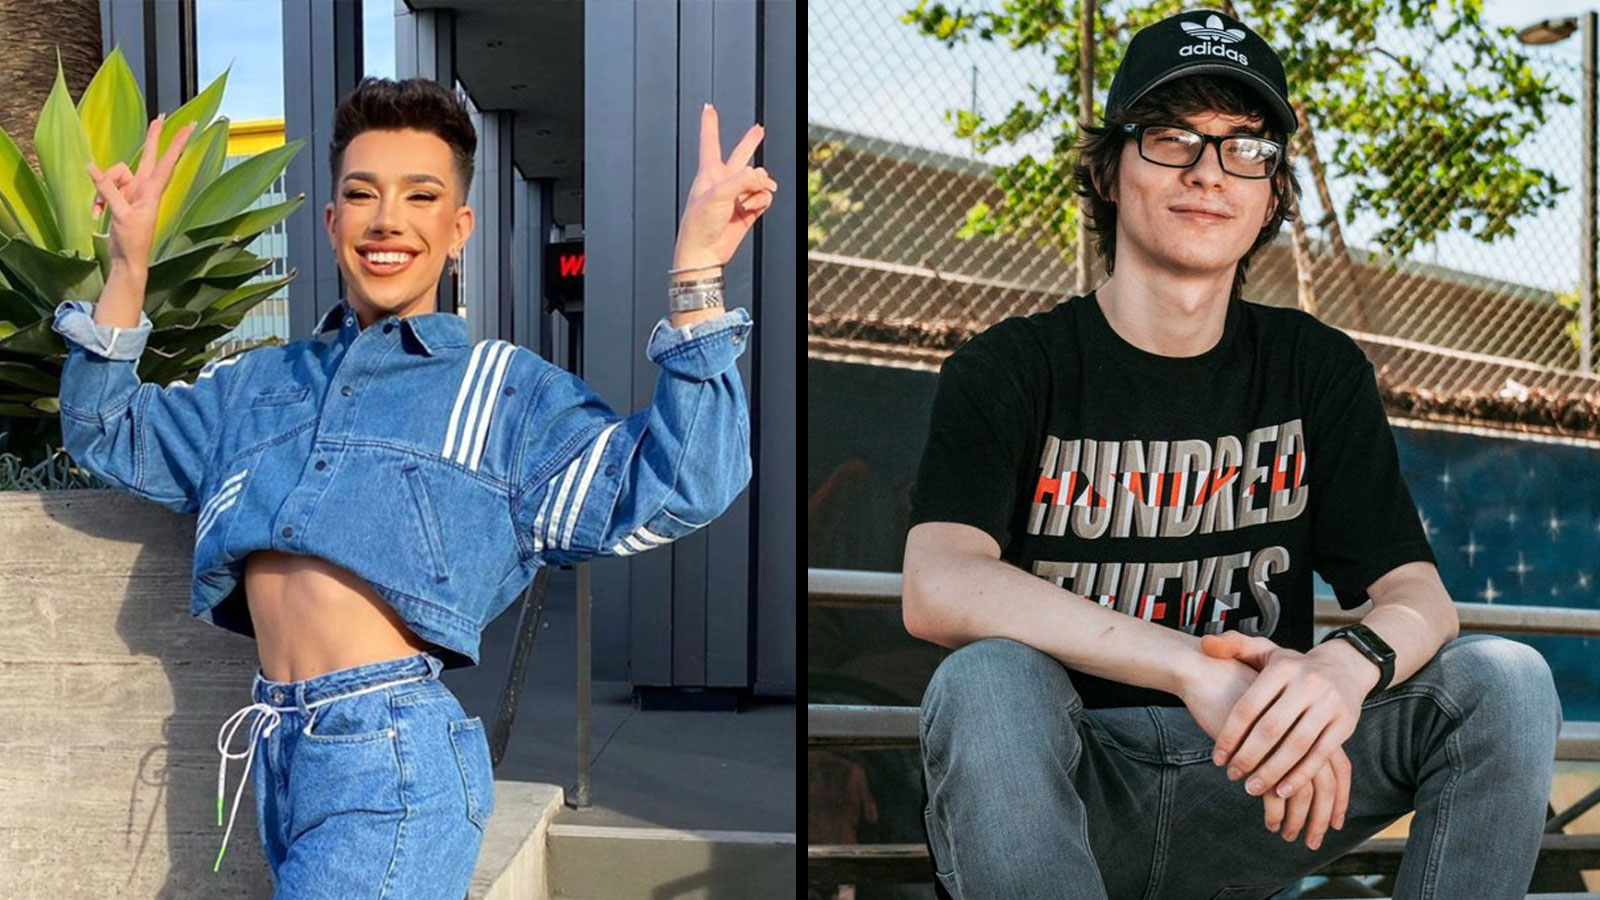 James Charles poses for Instagram photo, Froste poses for 100 Thieves announcement